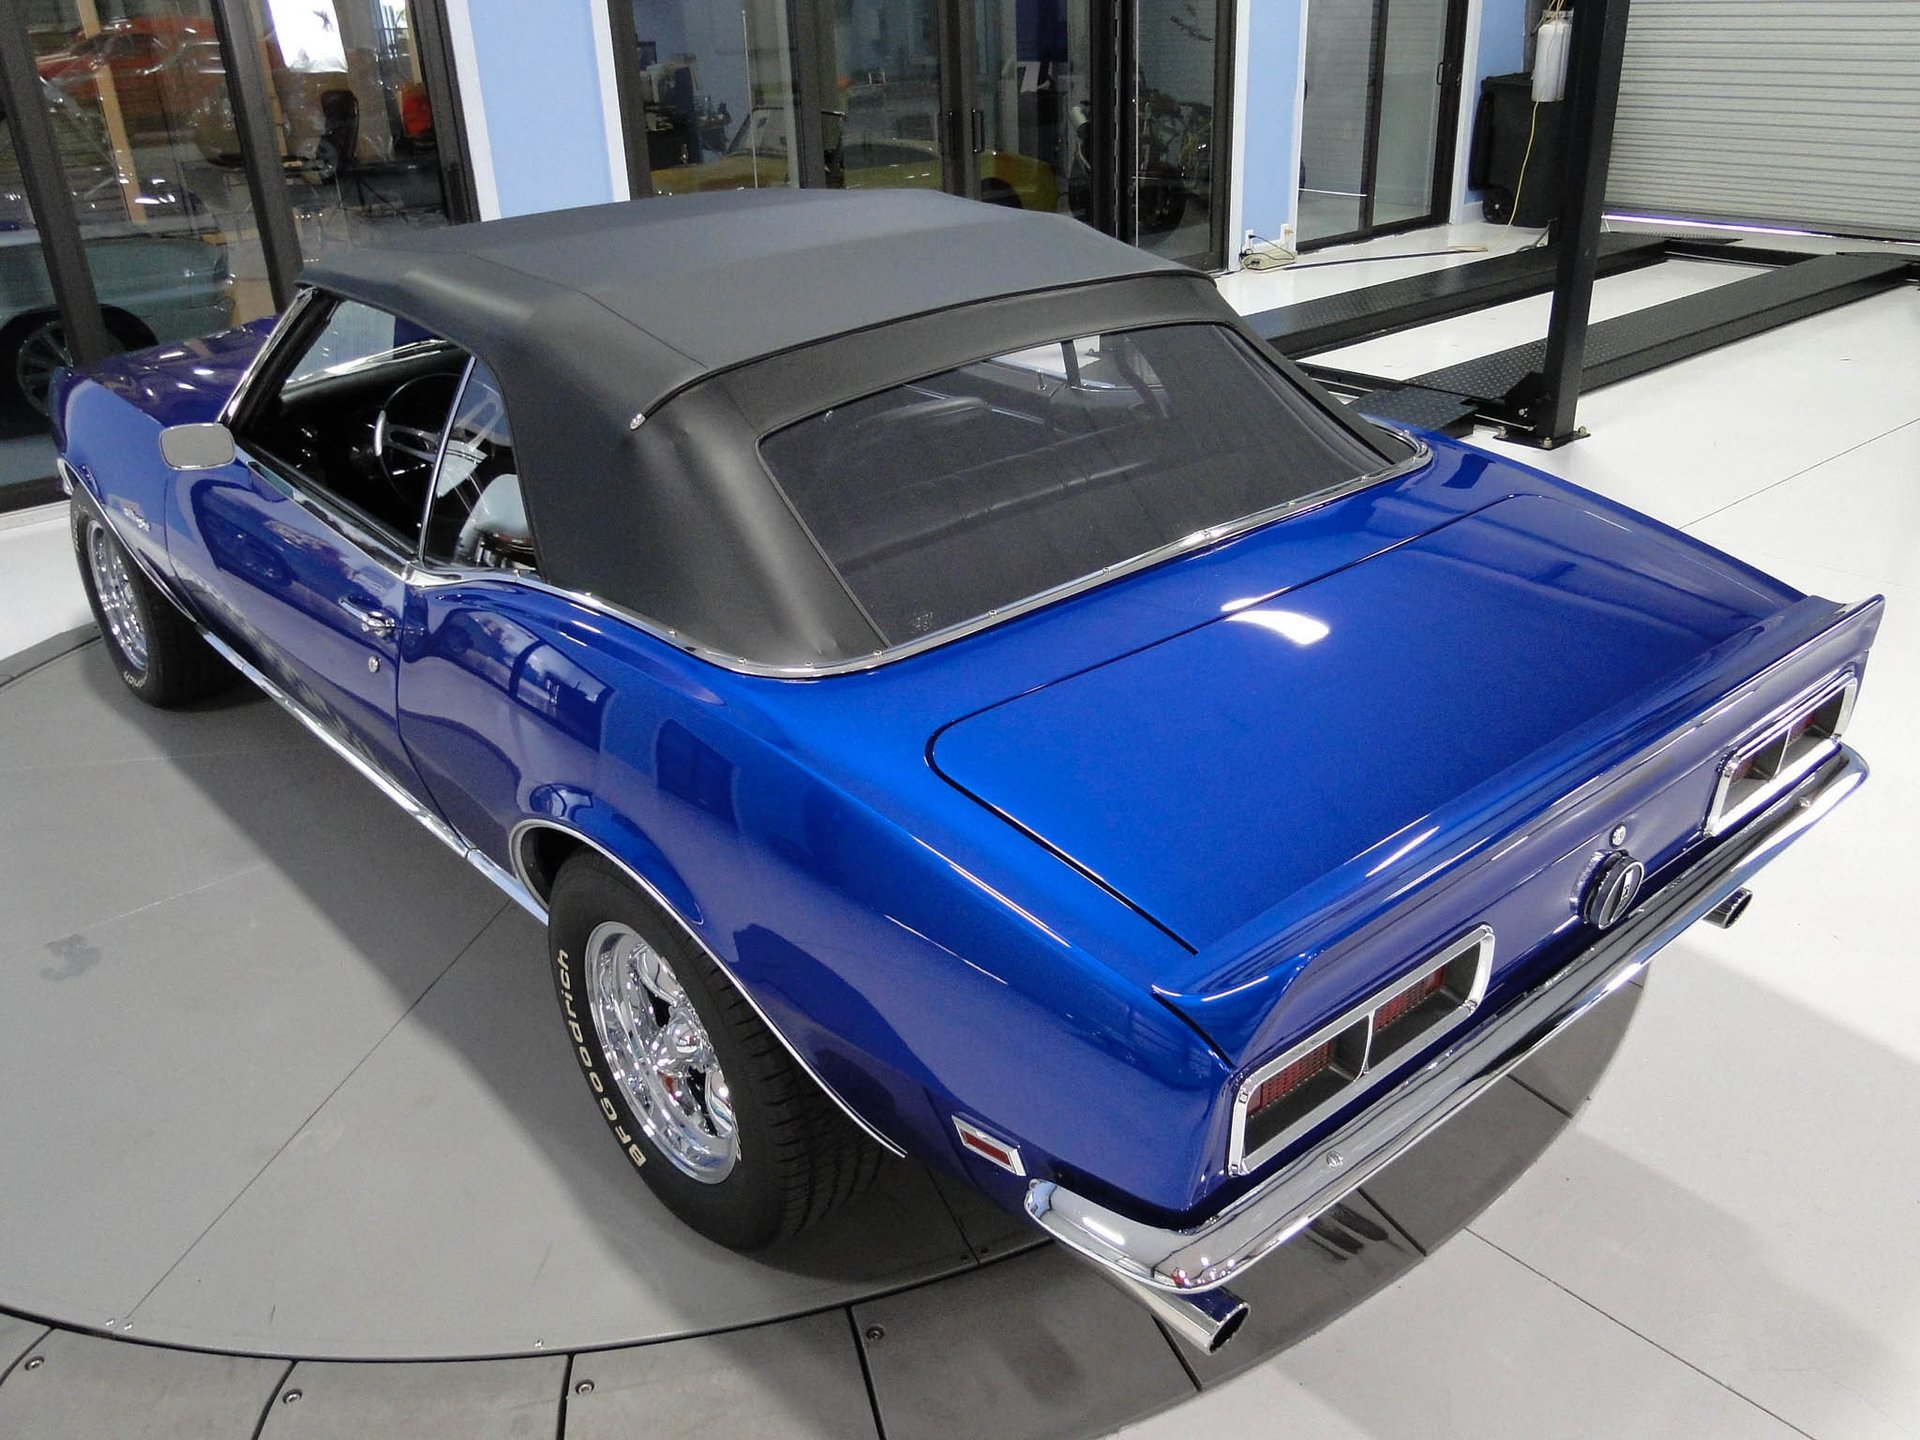 1968 Chevrolet Camaro Classic Cars Used For Sale In Tampa Fl Blue